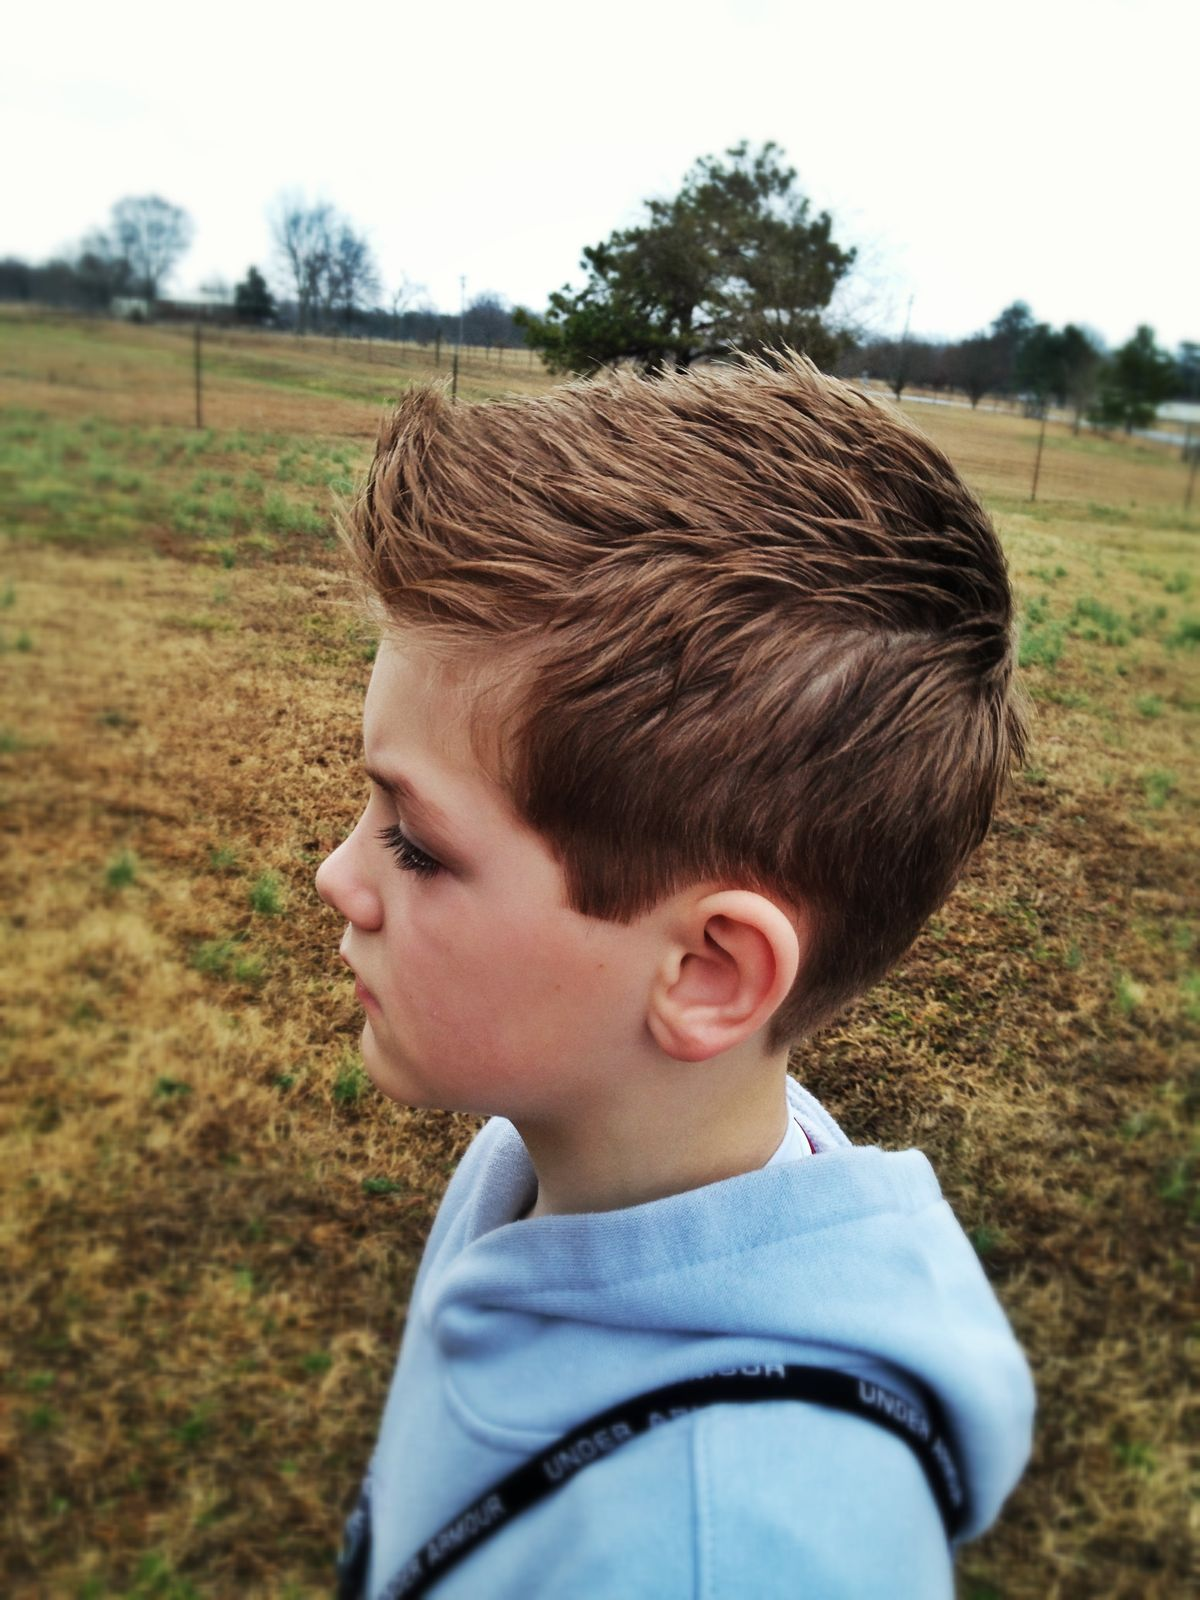 My little boys new hairstyle | Haircuts hard parts | Pinterest ...